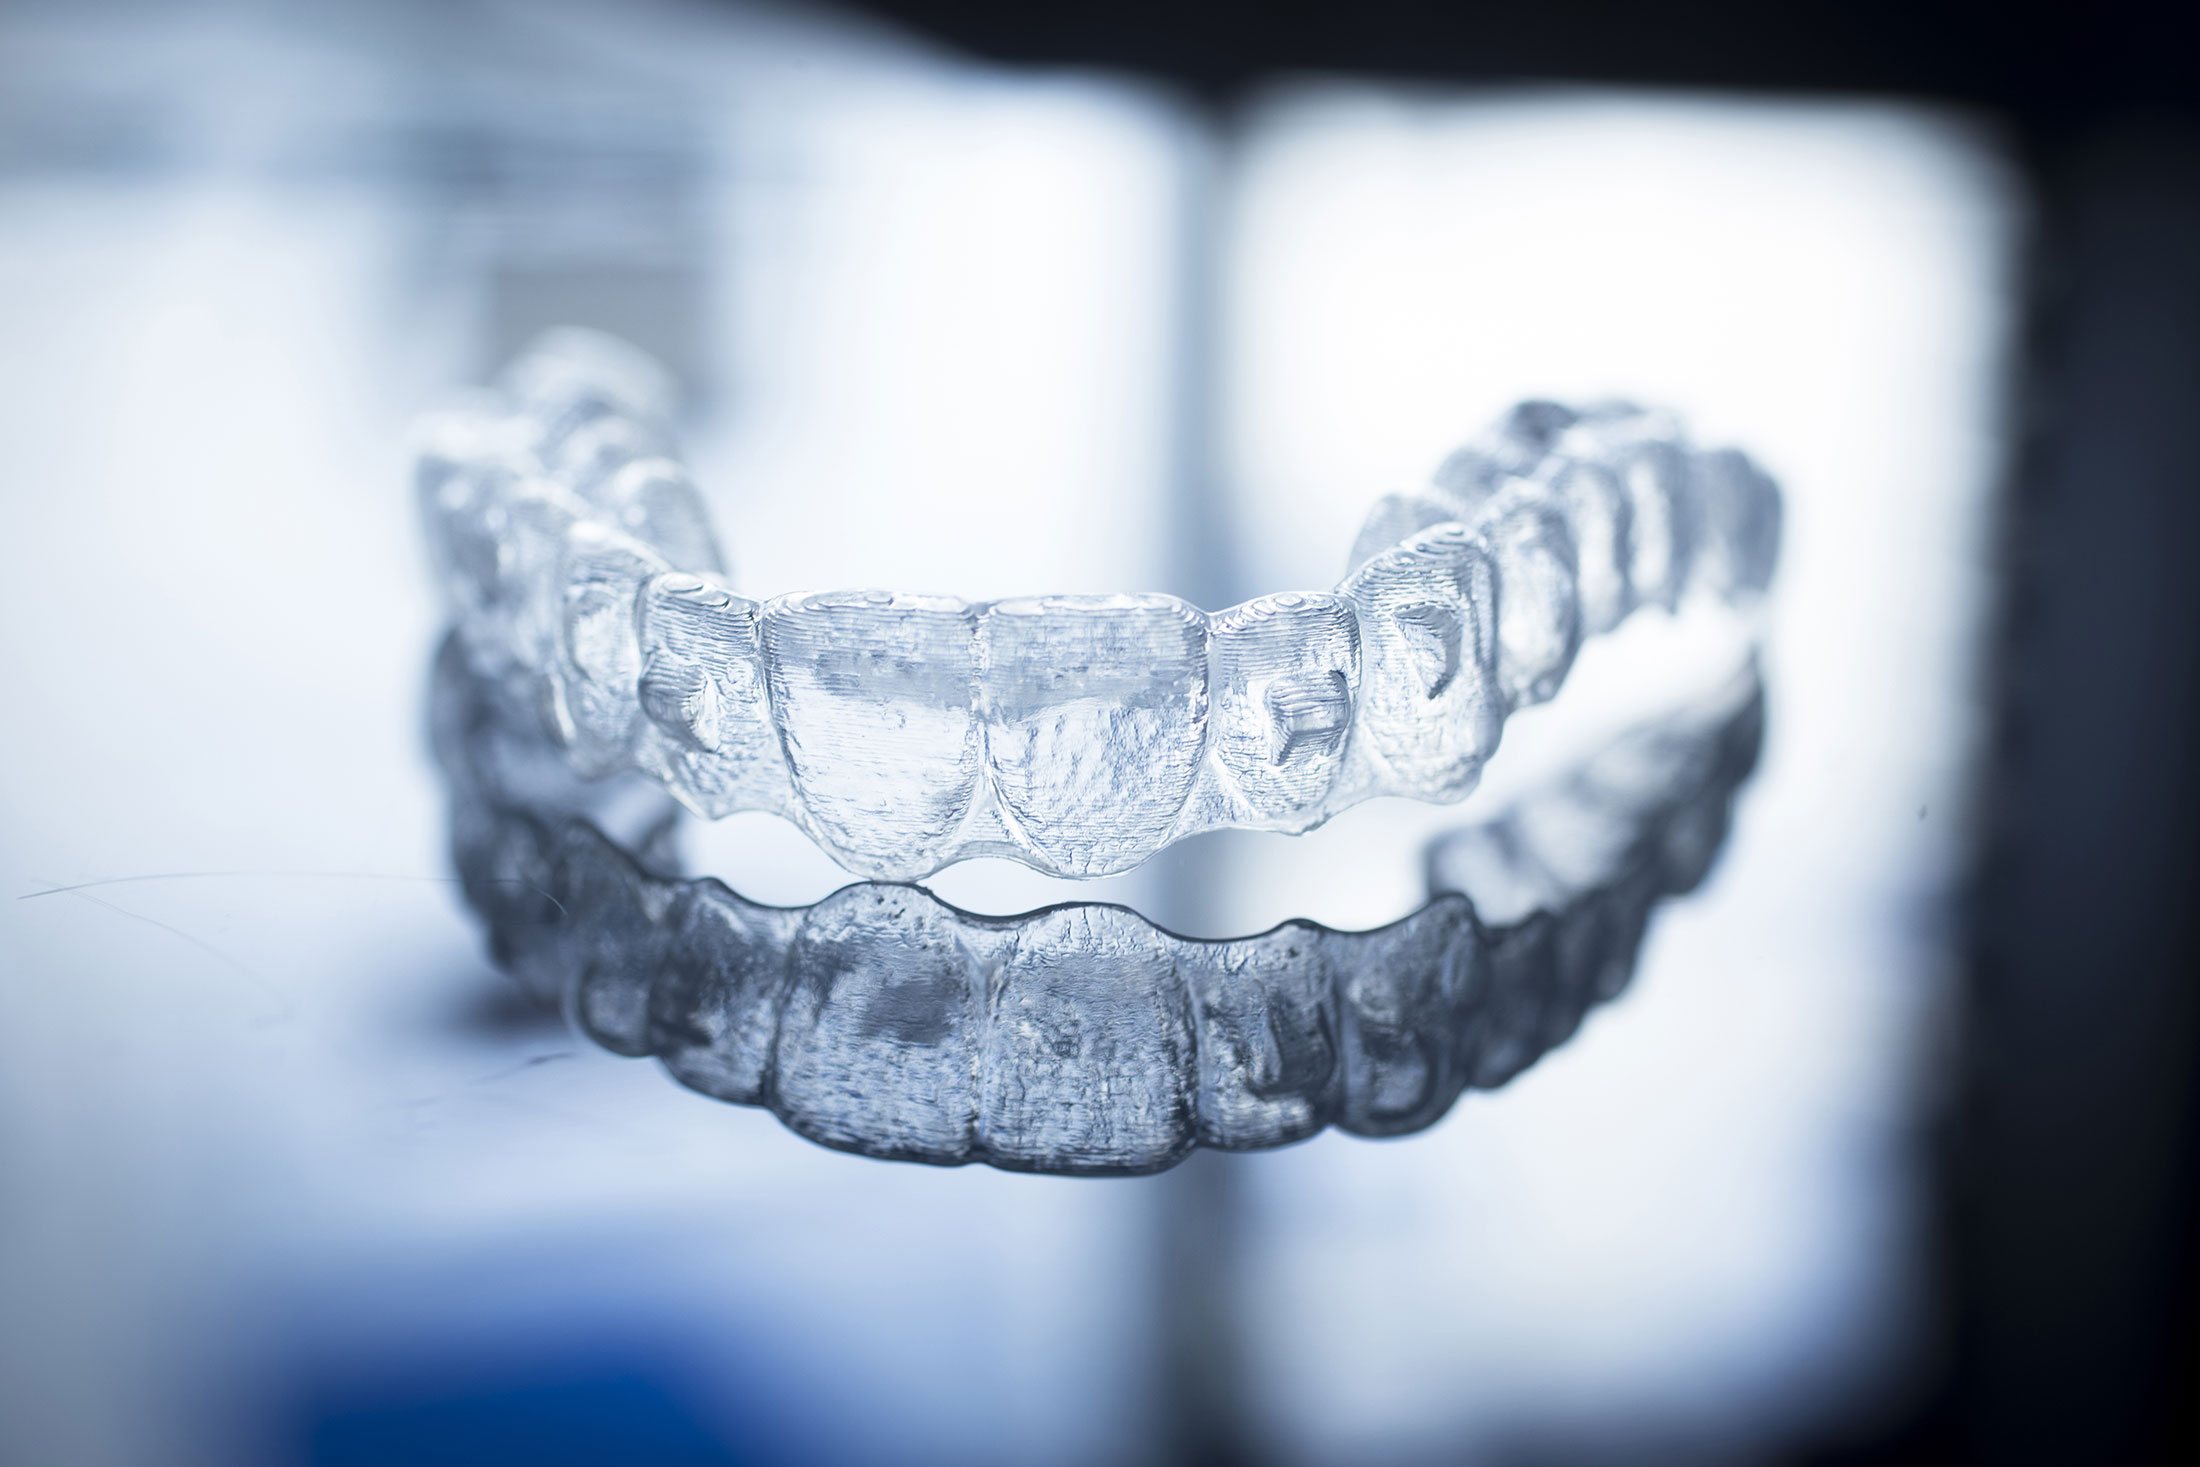 Invisalign - A complimentary consultation with our doctor can determine if Invisalign is right for you.